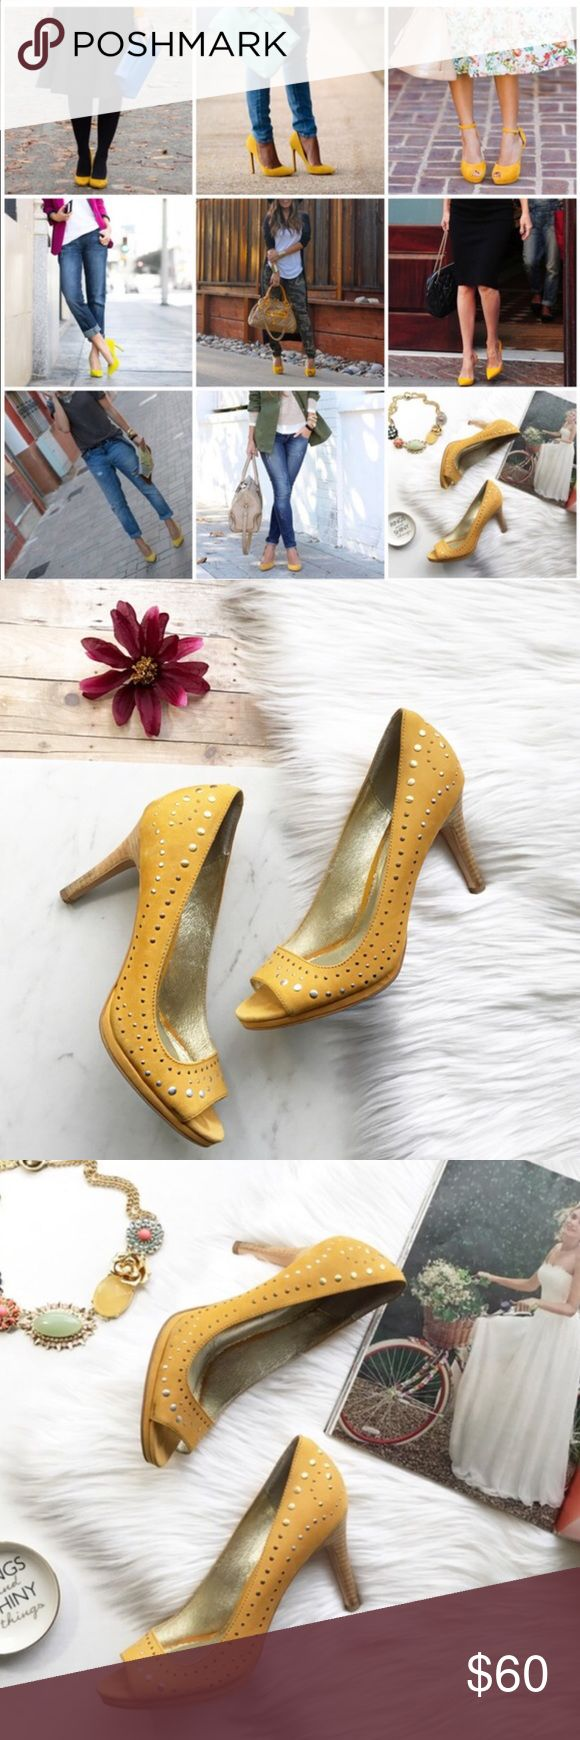 Mustard Shoes! Anthropologie shoes! Preloved but still in good condition:) Anthropologie Shoes Heels